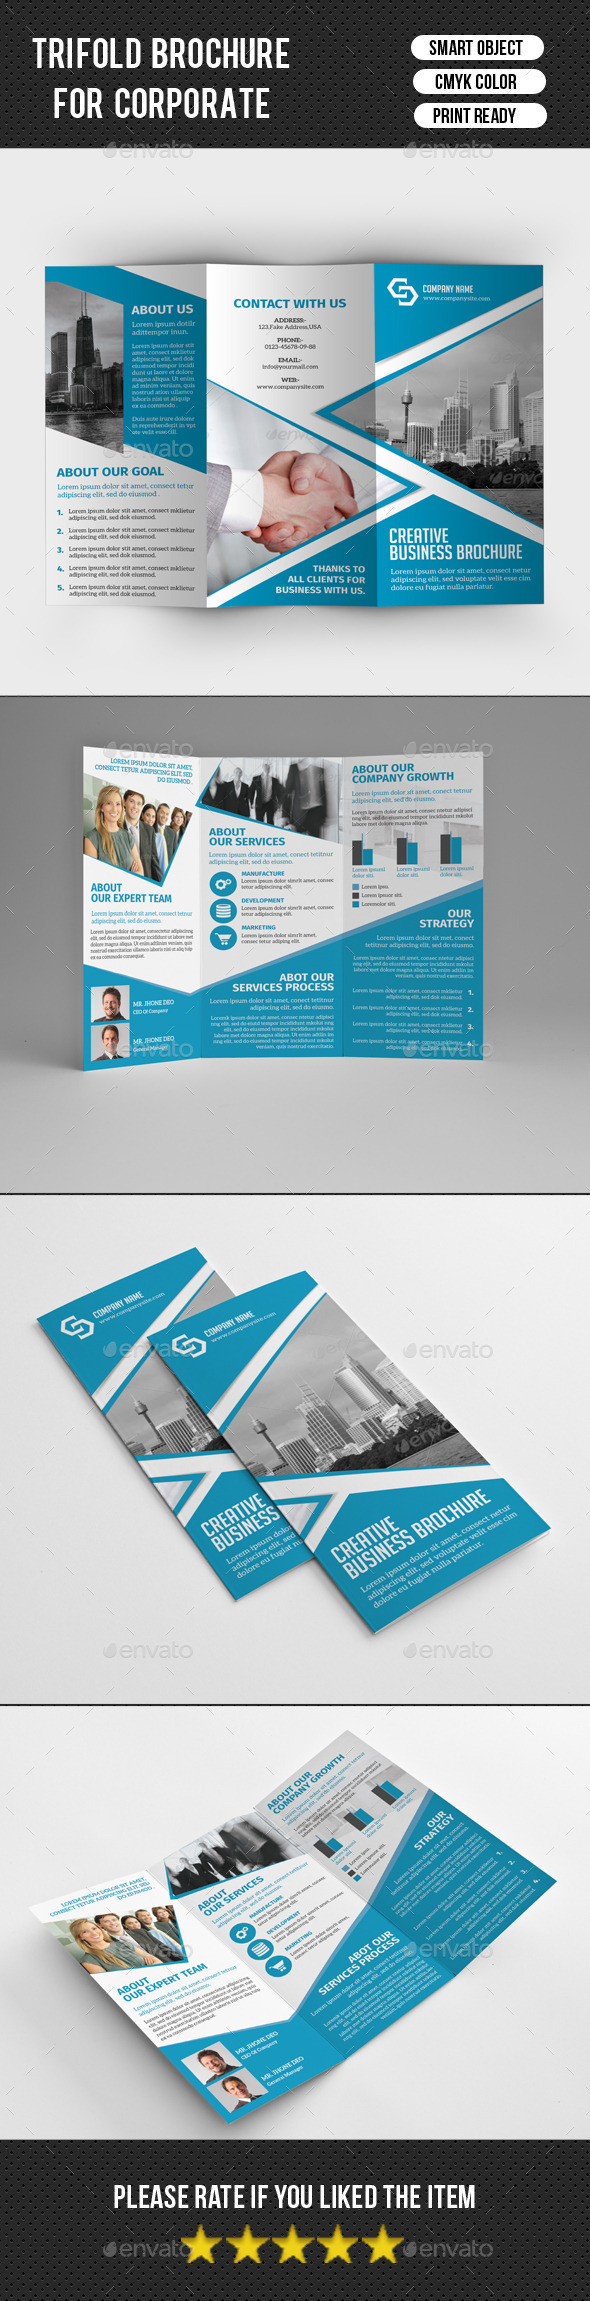 Corporate Trifold Brochure-V226